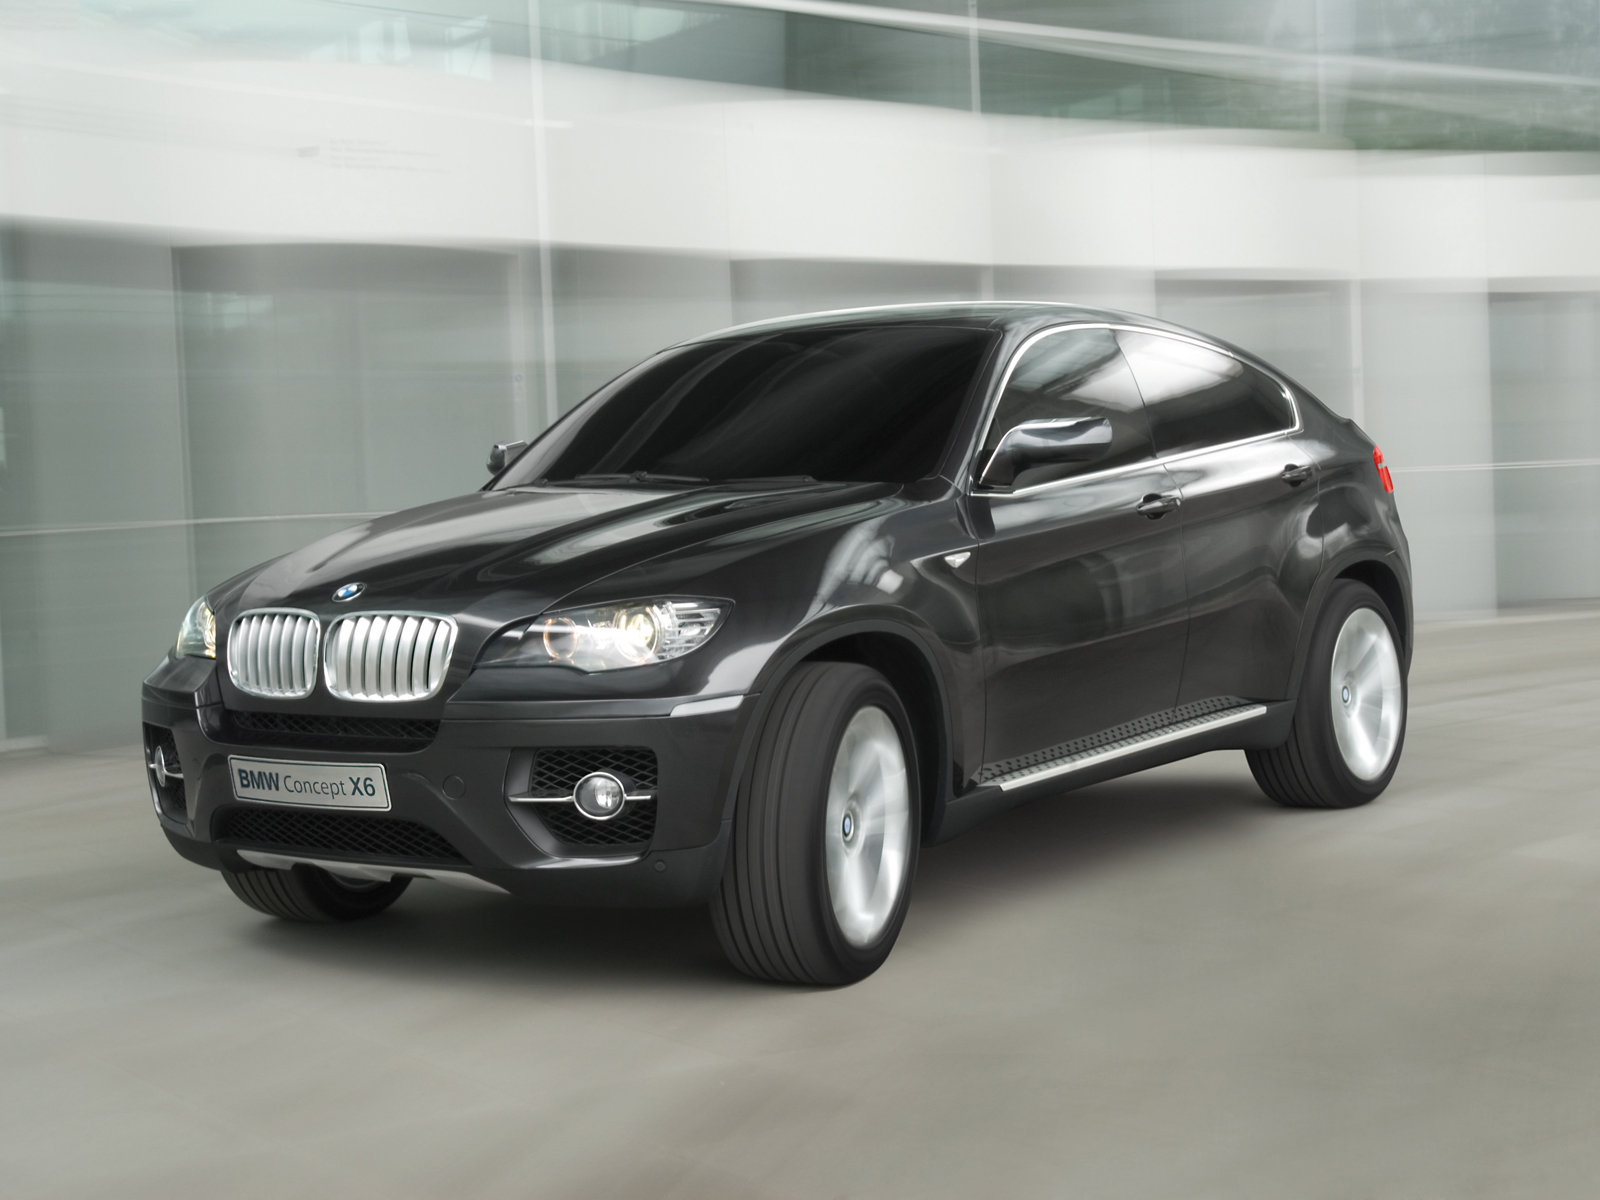 2007 bmw x6 concept front view